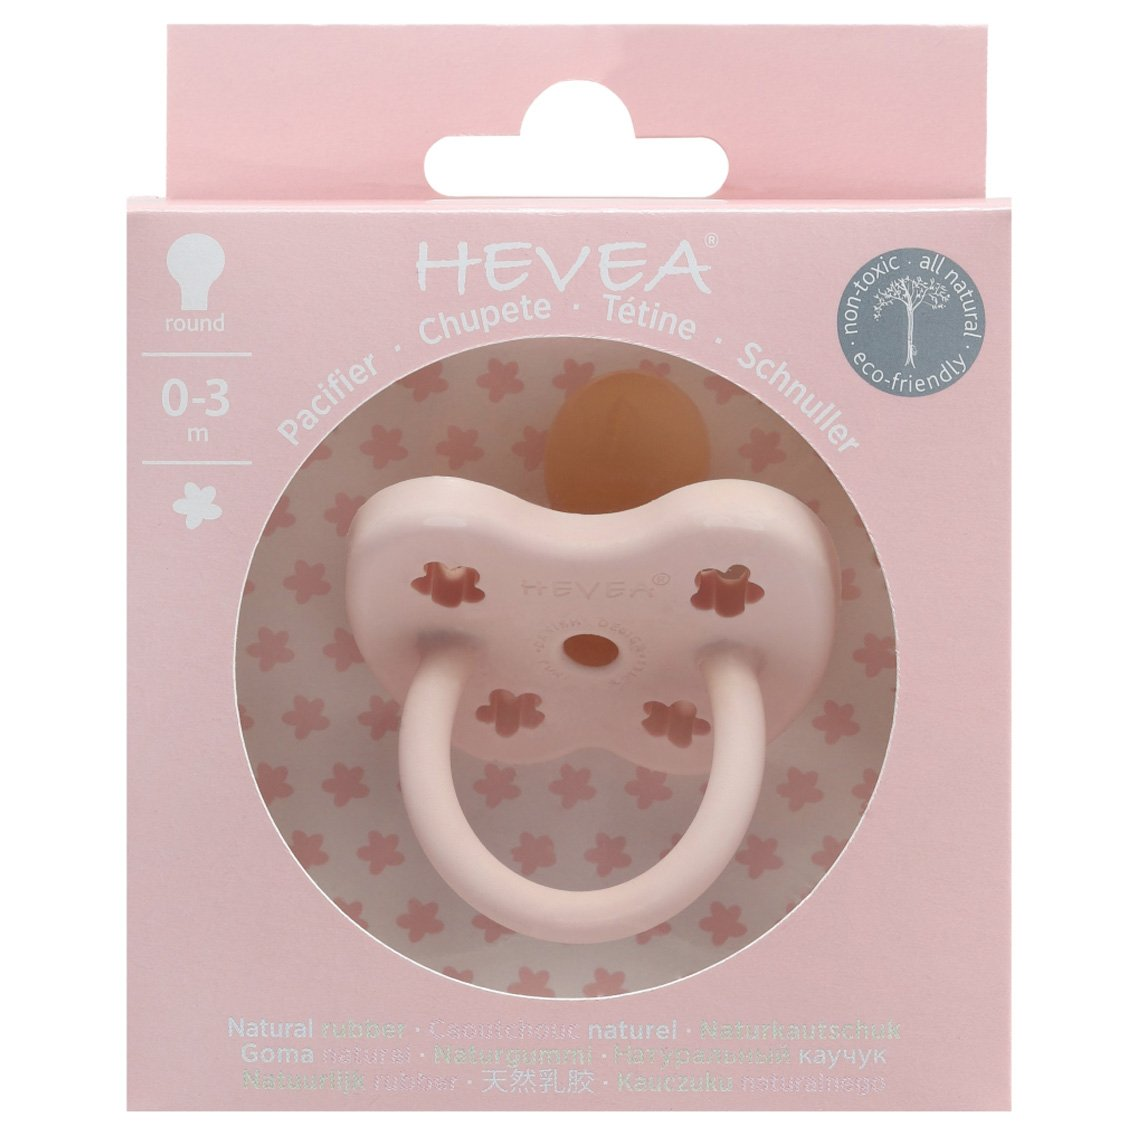 Hevea Pacifier - Powder Pink - Orthodontic